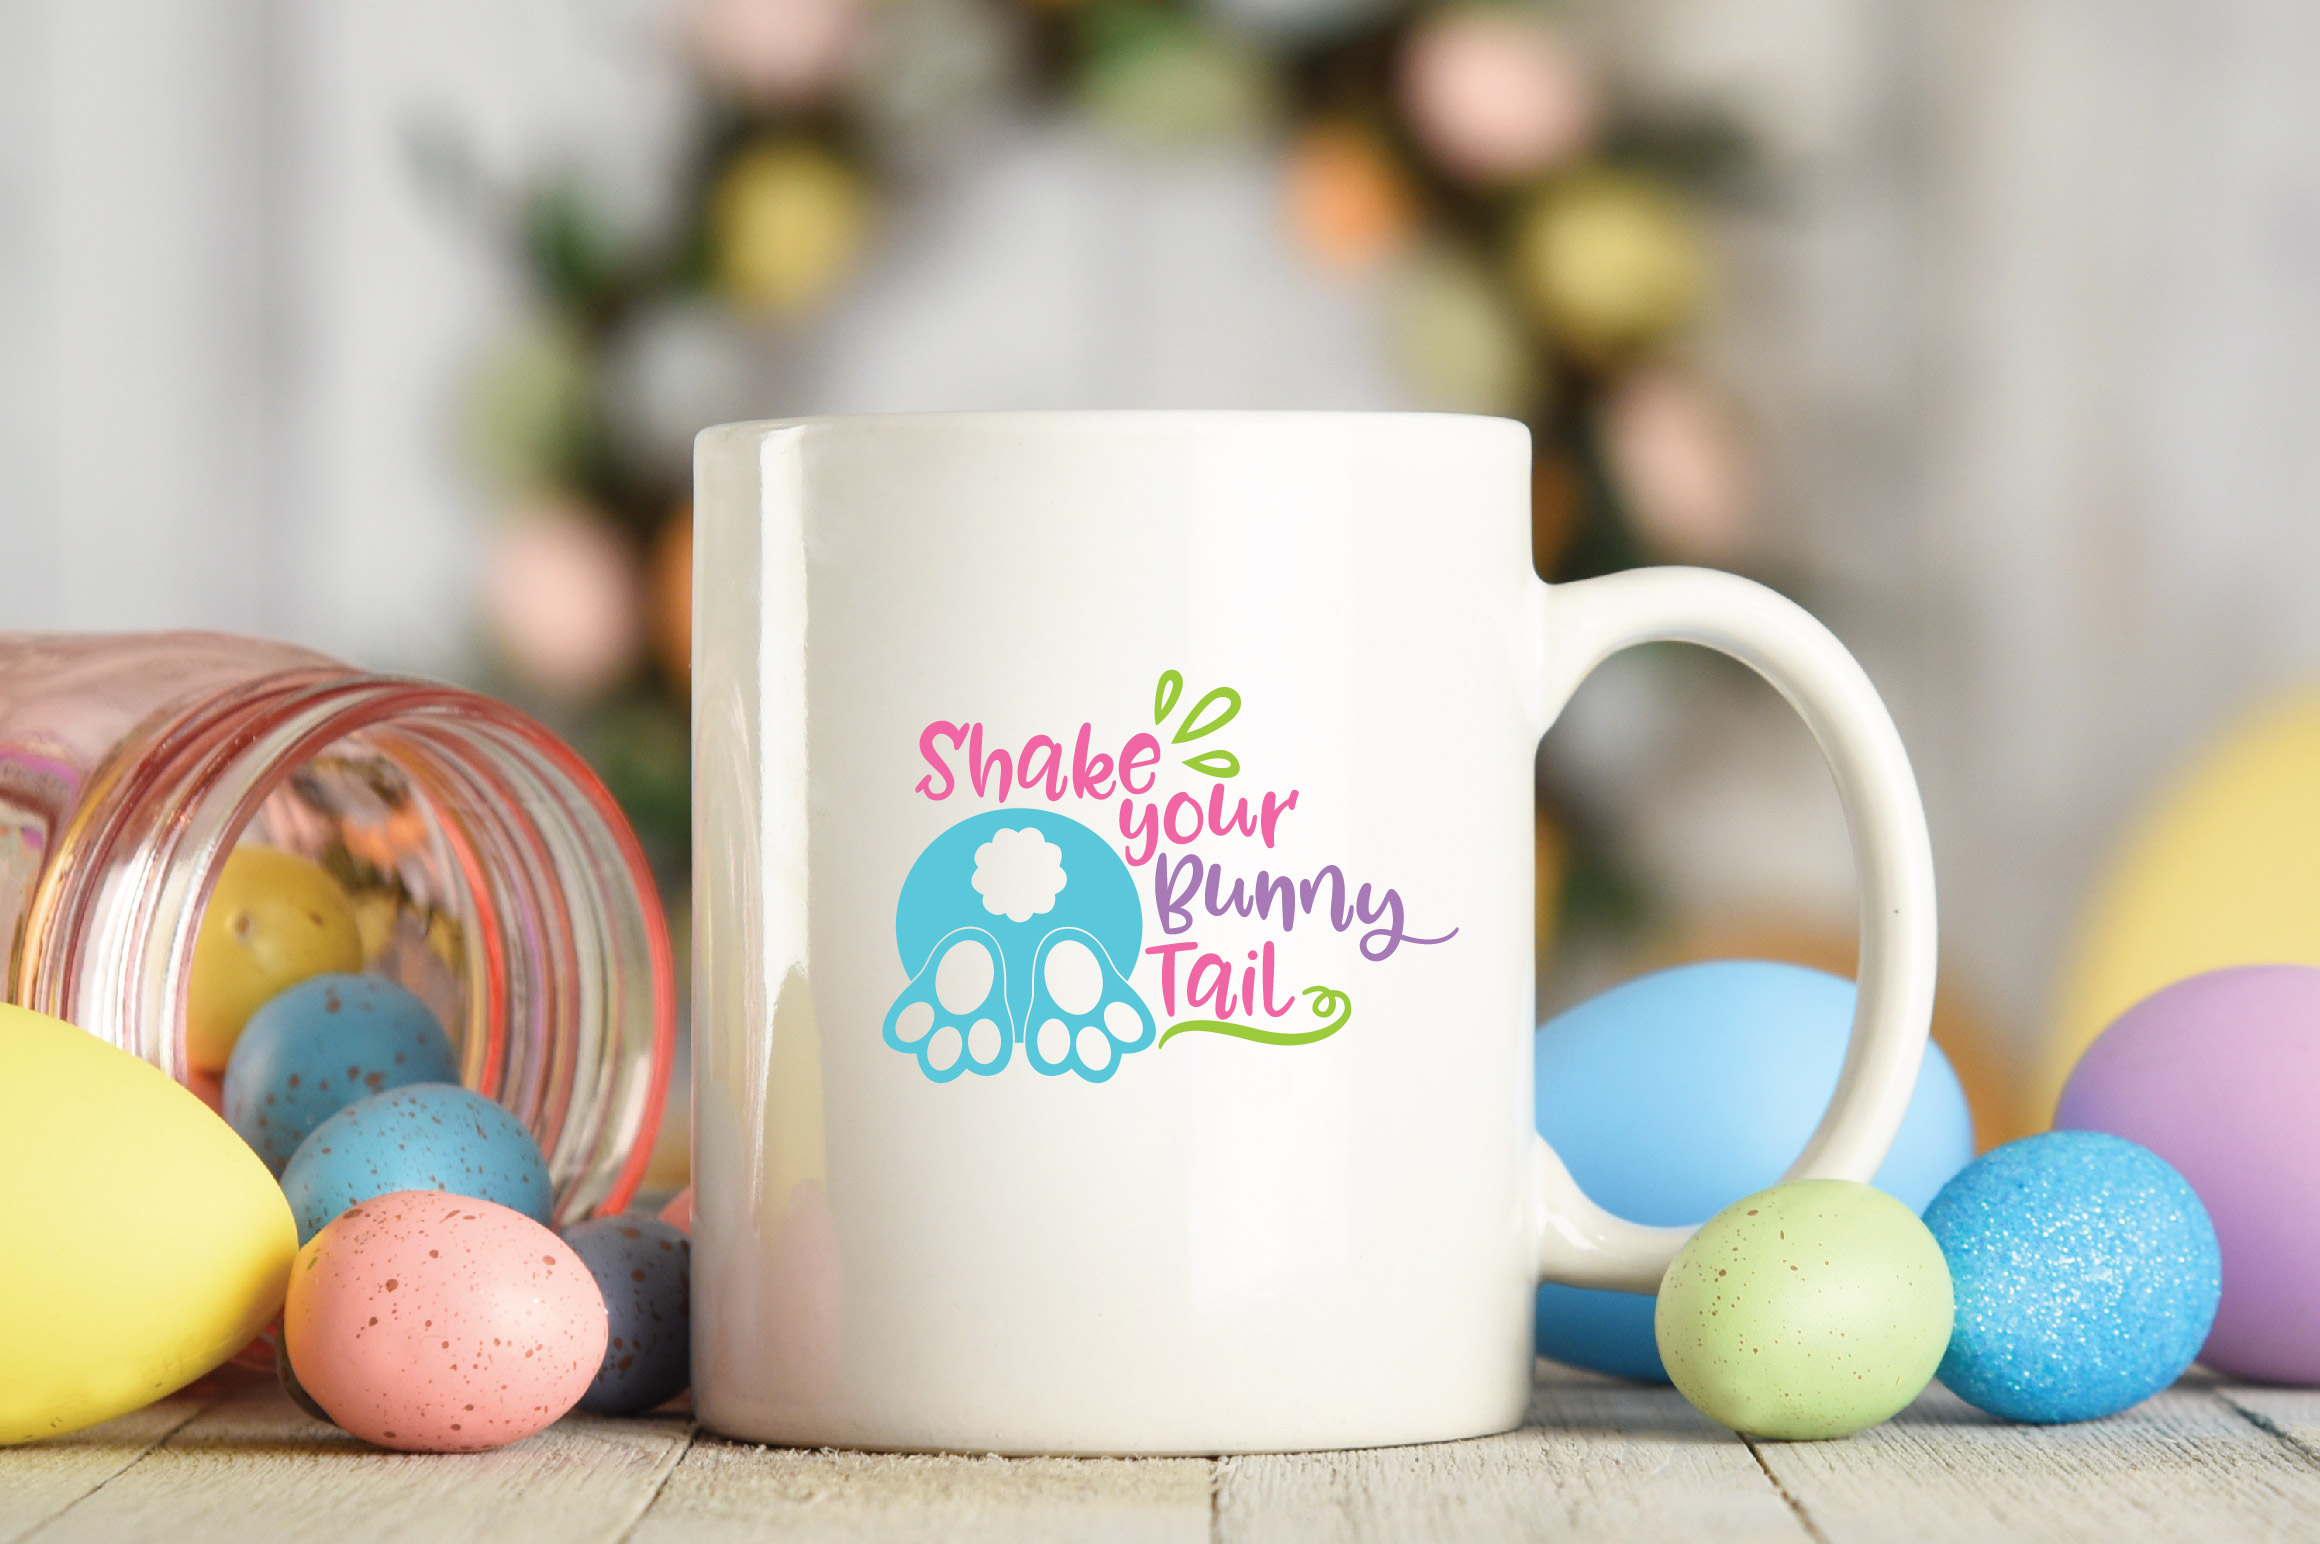 Easter SVG Cut File - Shake your Bunny Tail SVG DXF EPS PNG example image 4